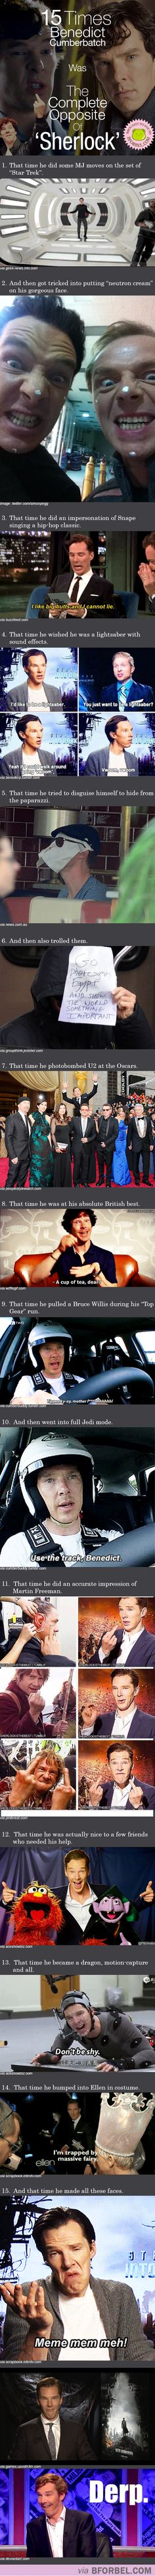 15 Times Benedict Cumberbatch Was The Complete Opposite Of 'Sherlock'…